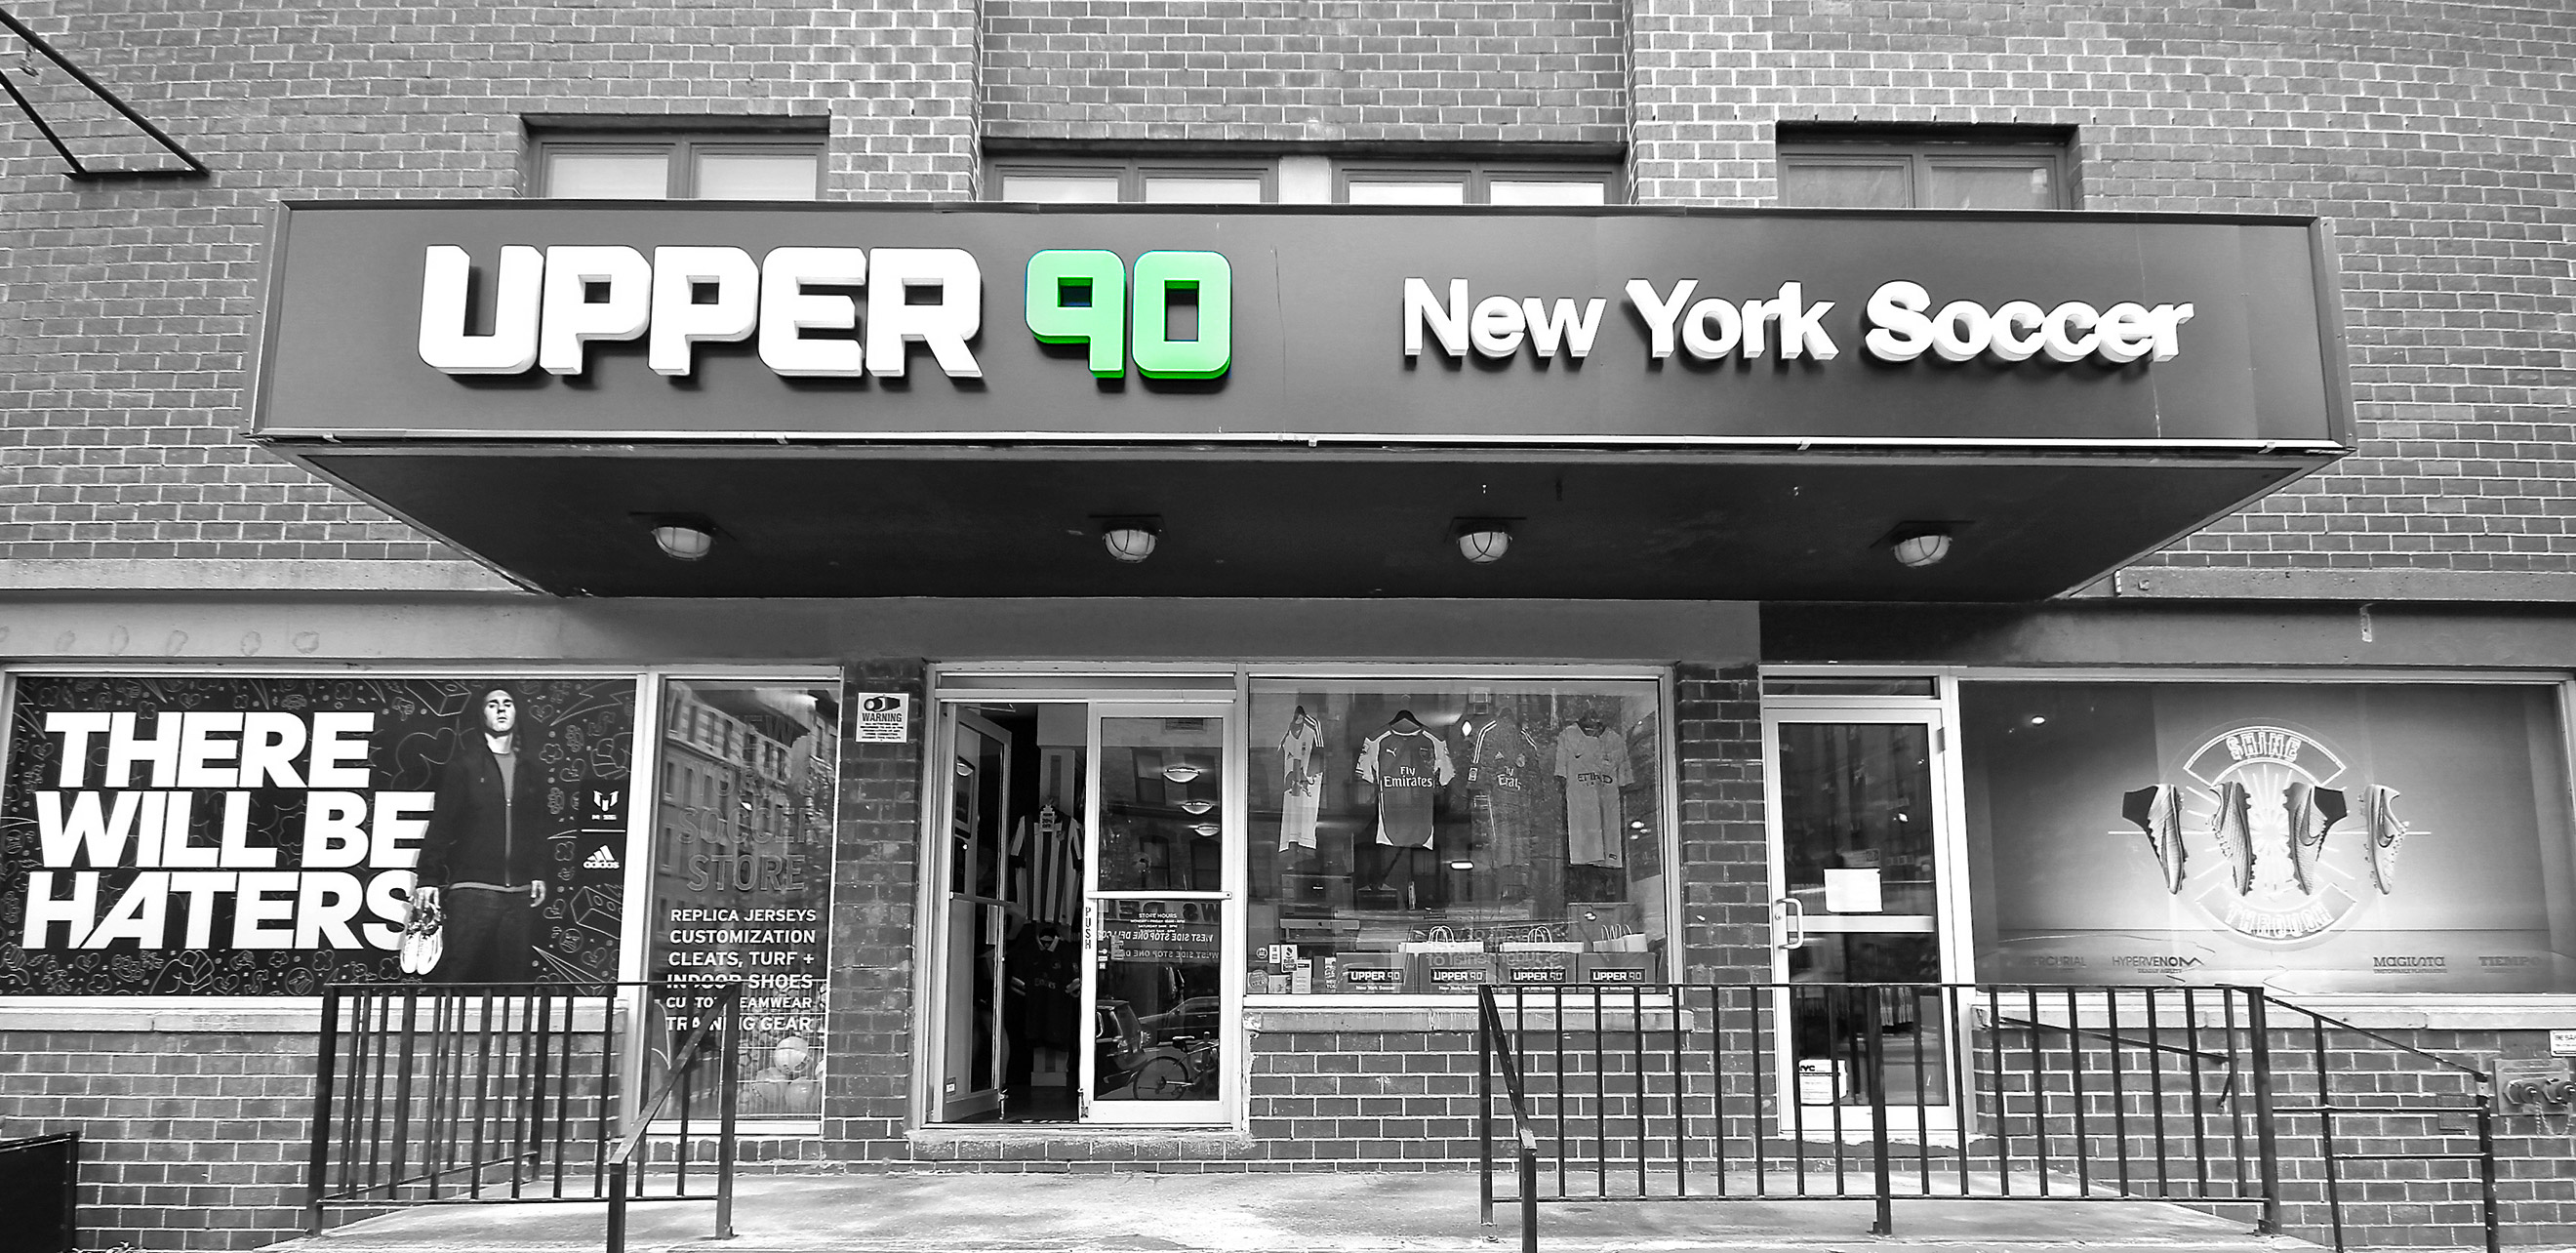 Upper 90 Soccer Manhattan